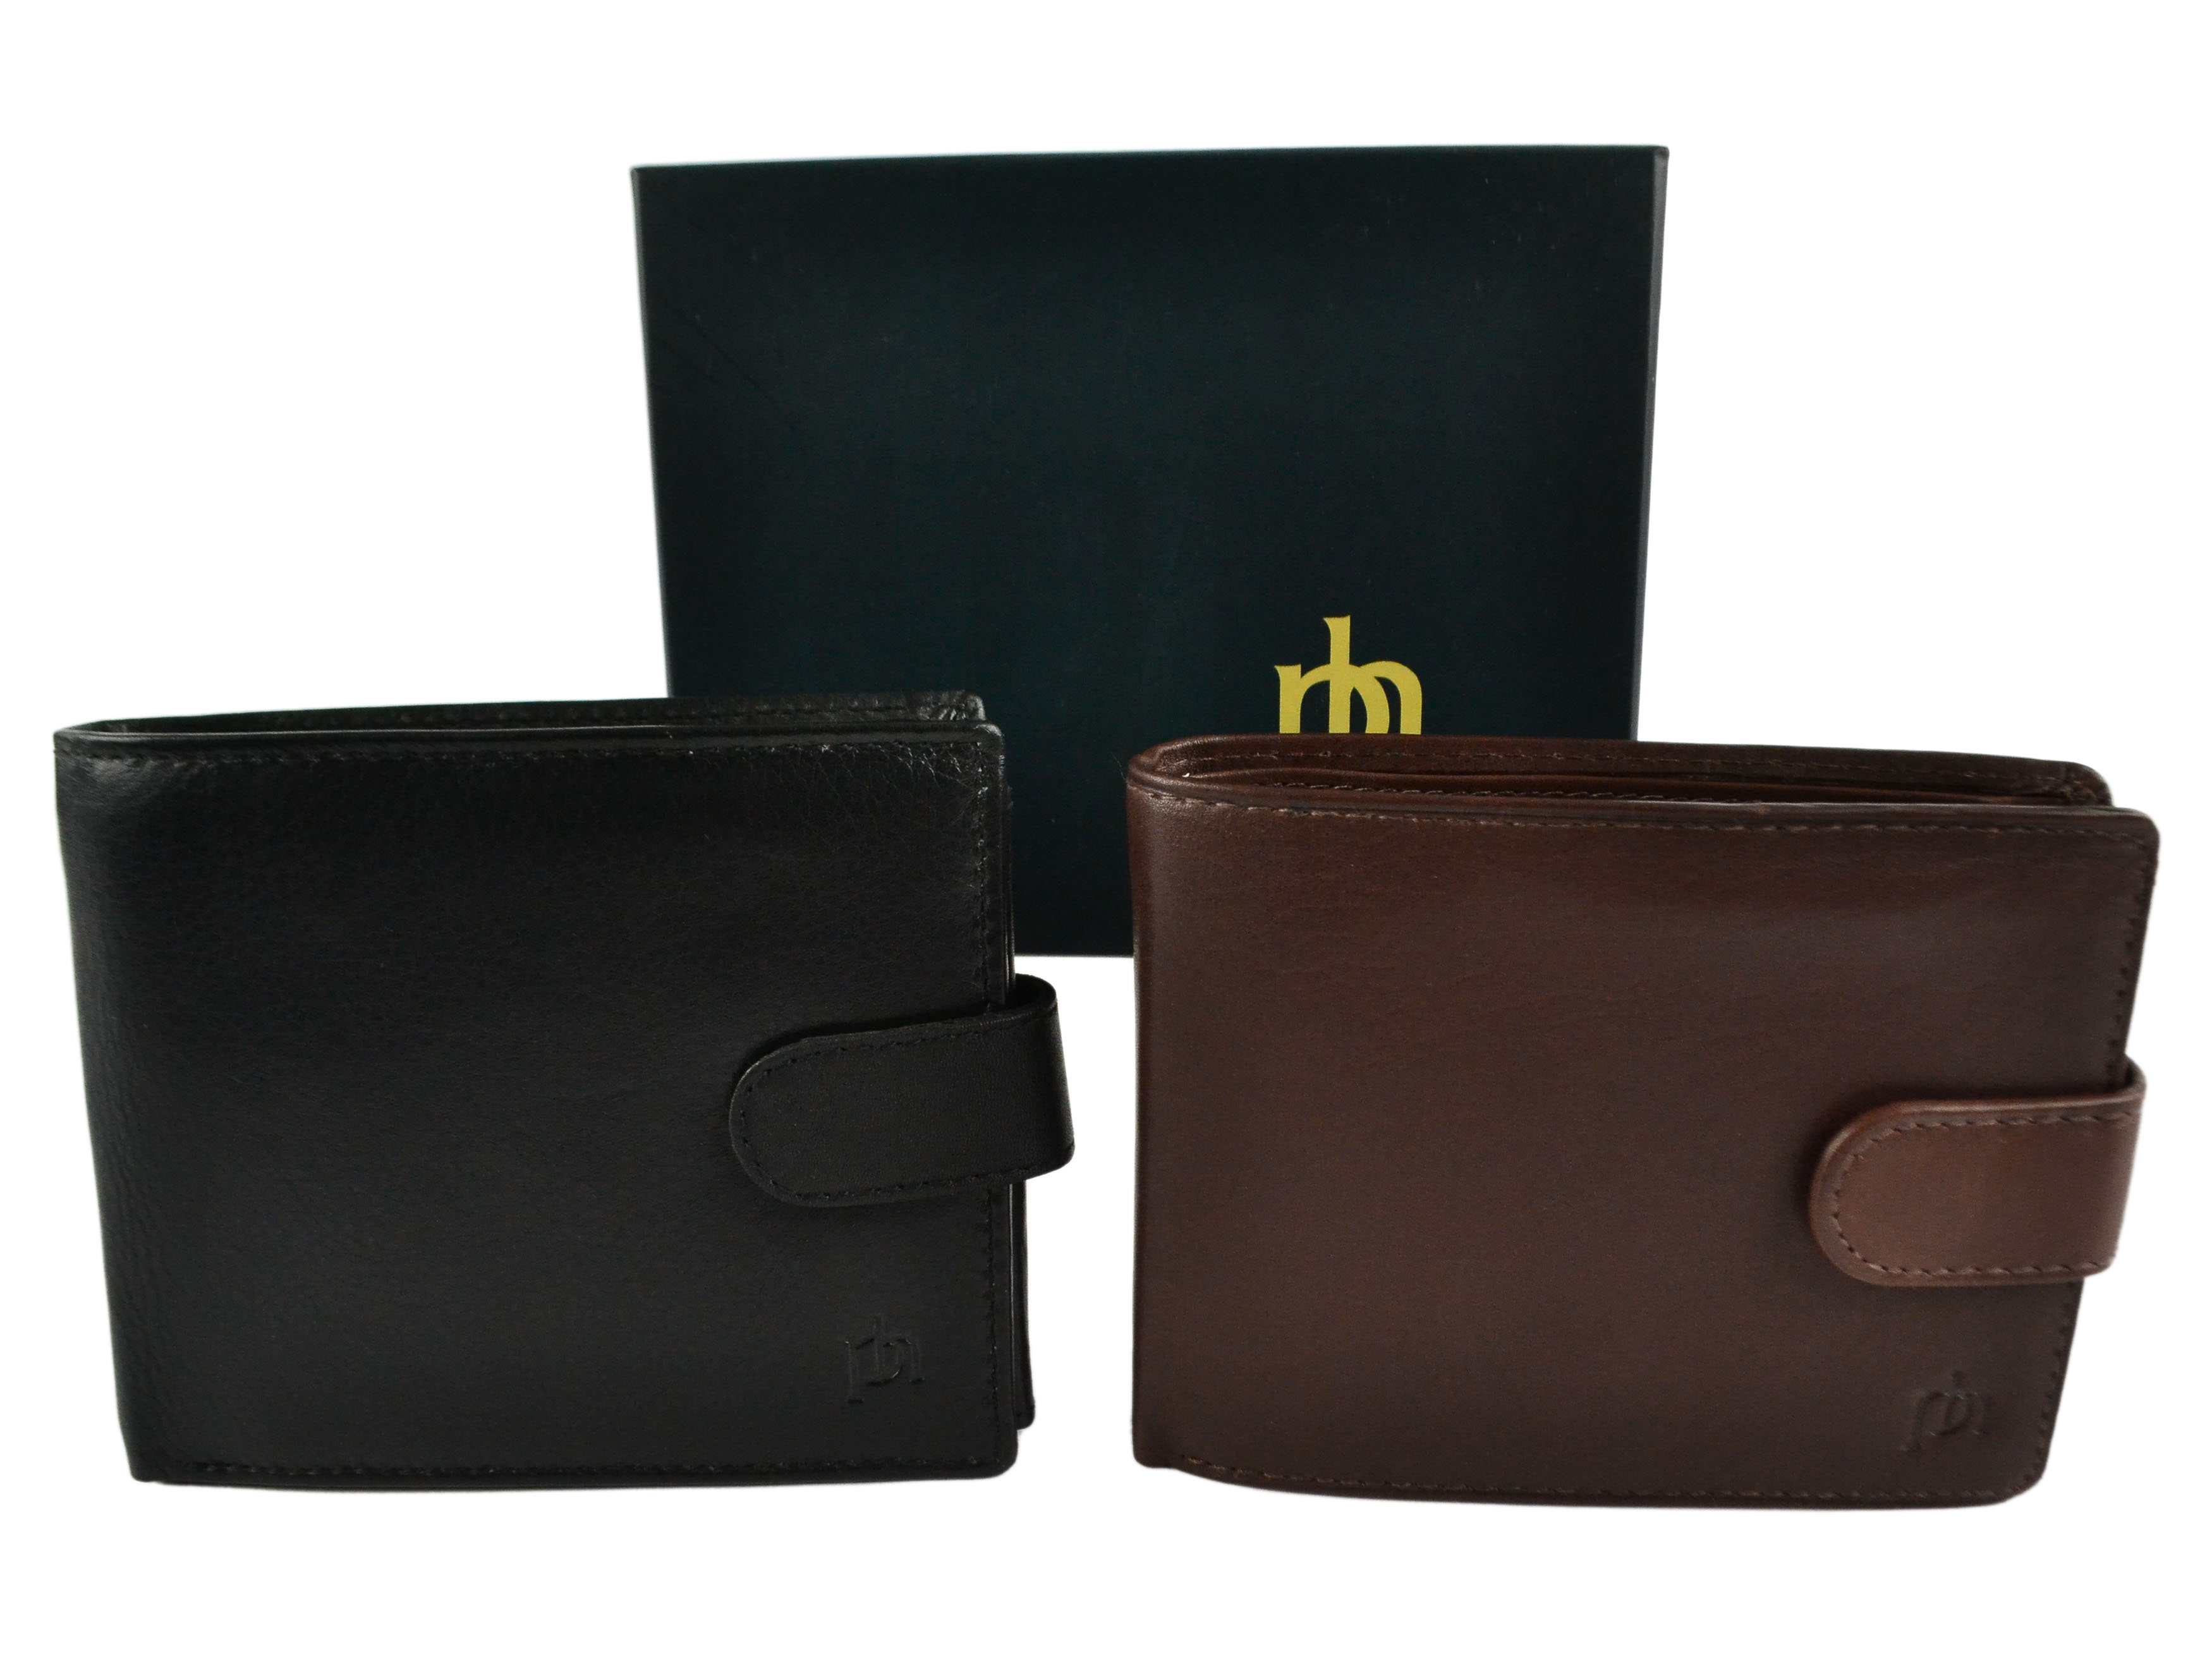 Mens-Quality-Leather-Wallet-by-Prime-Hide-Gift-Boxed-Stylish-with-Coin-Pocket thumbnail 8